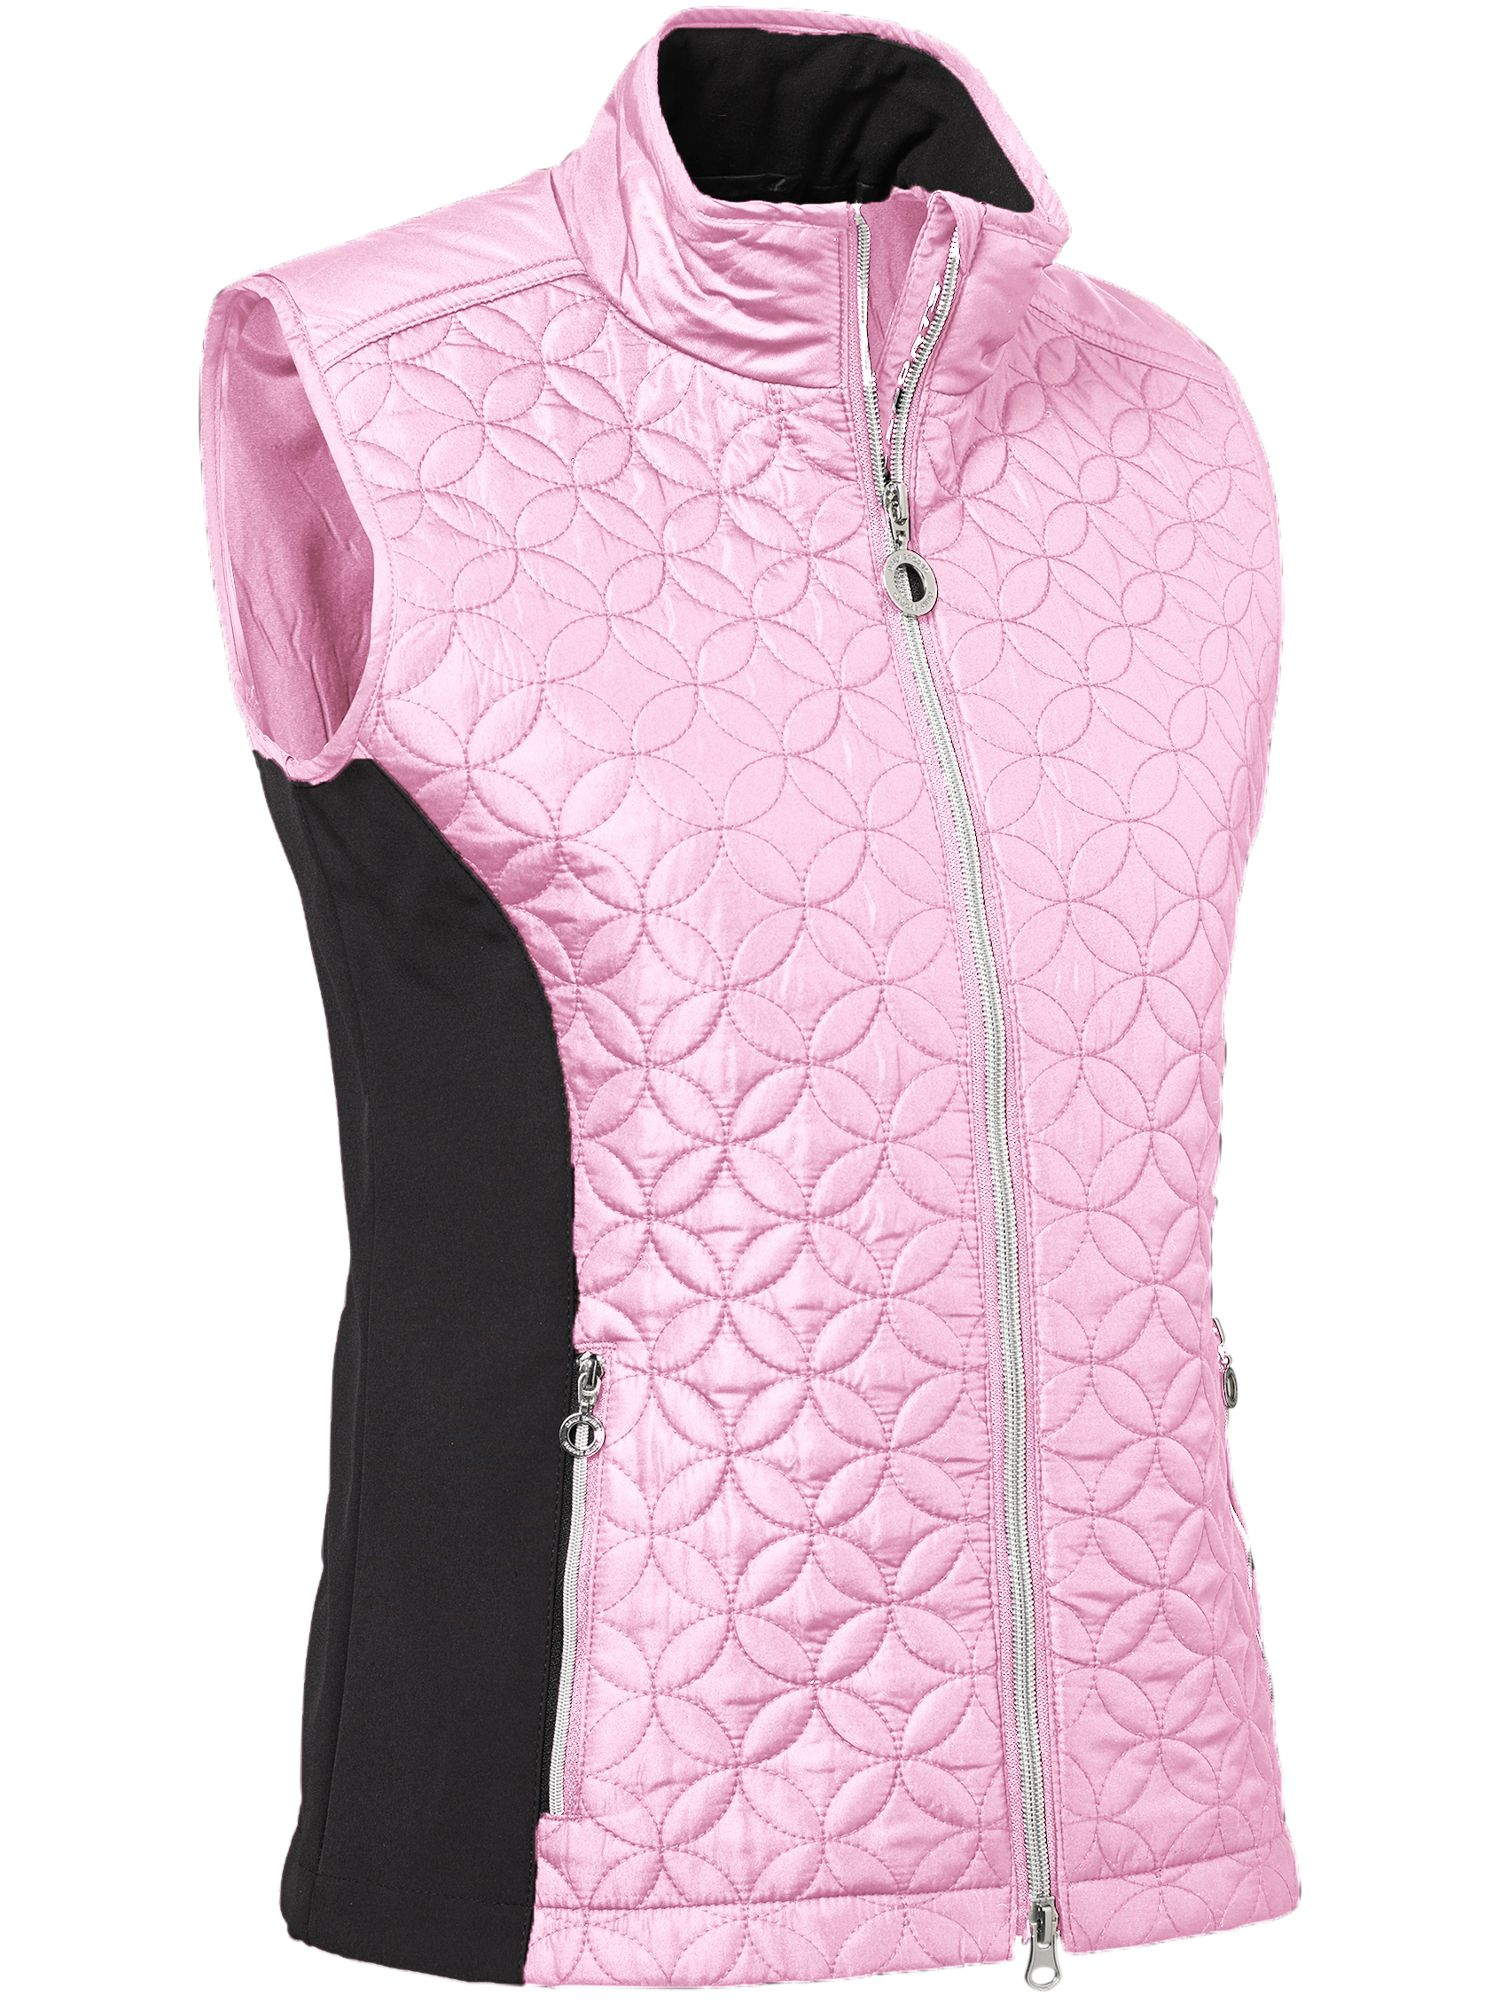 Daily Sports Normie Wind Vest, Pink